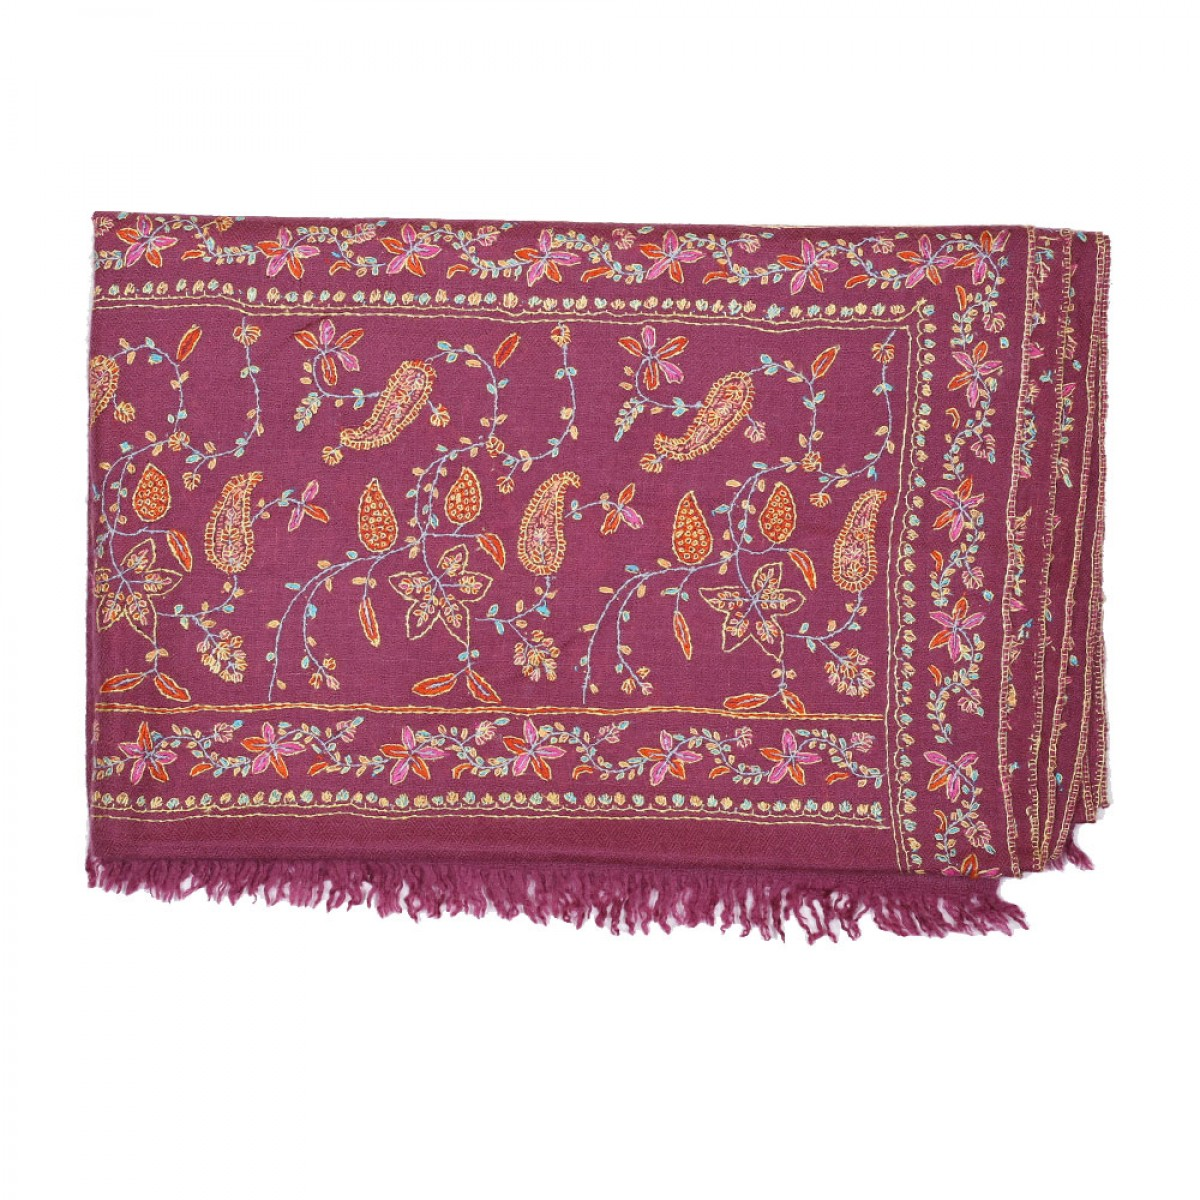 Embroidered Pashmina Stole - Mulberry